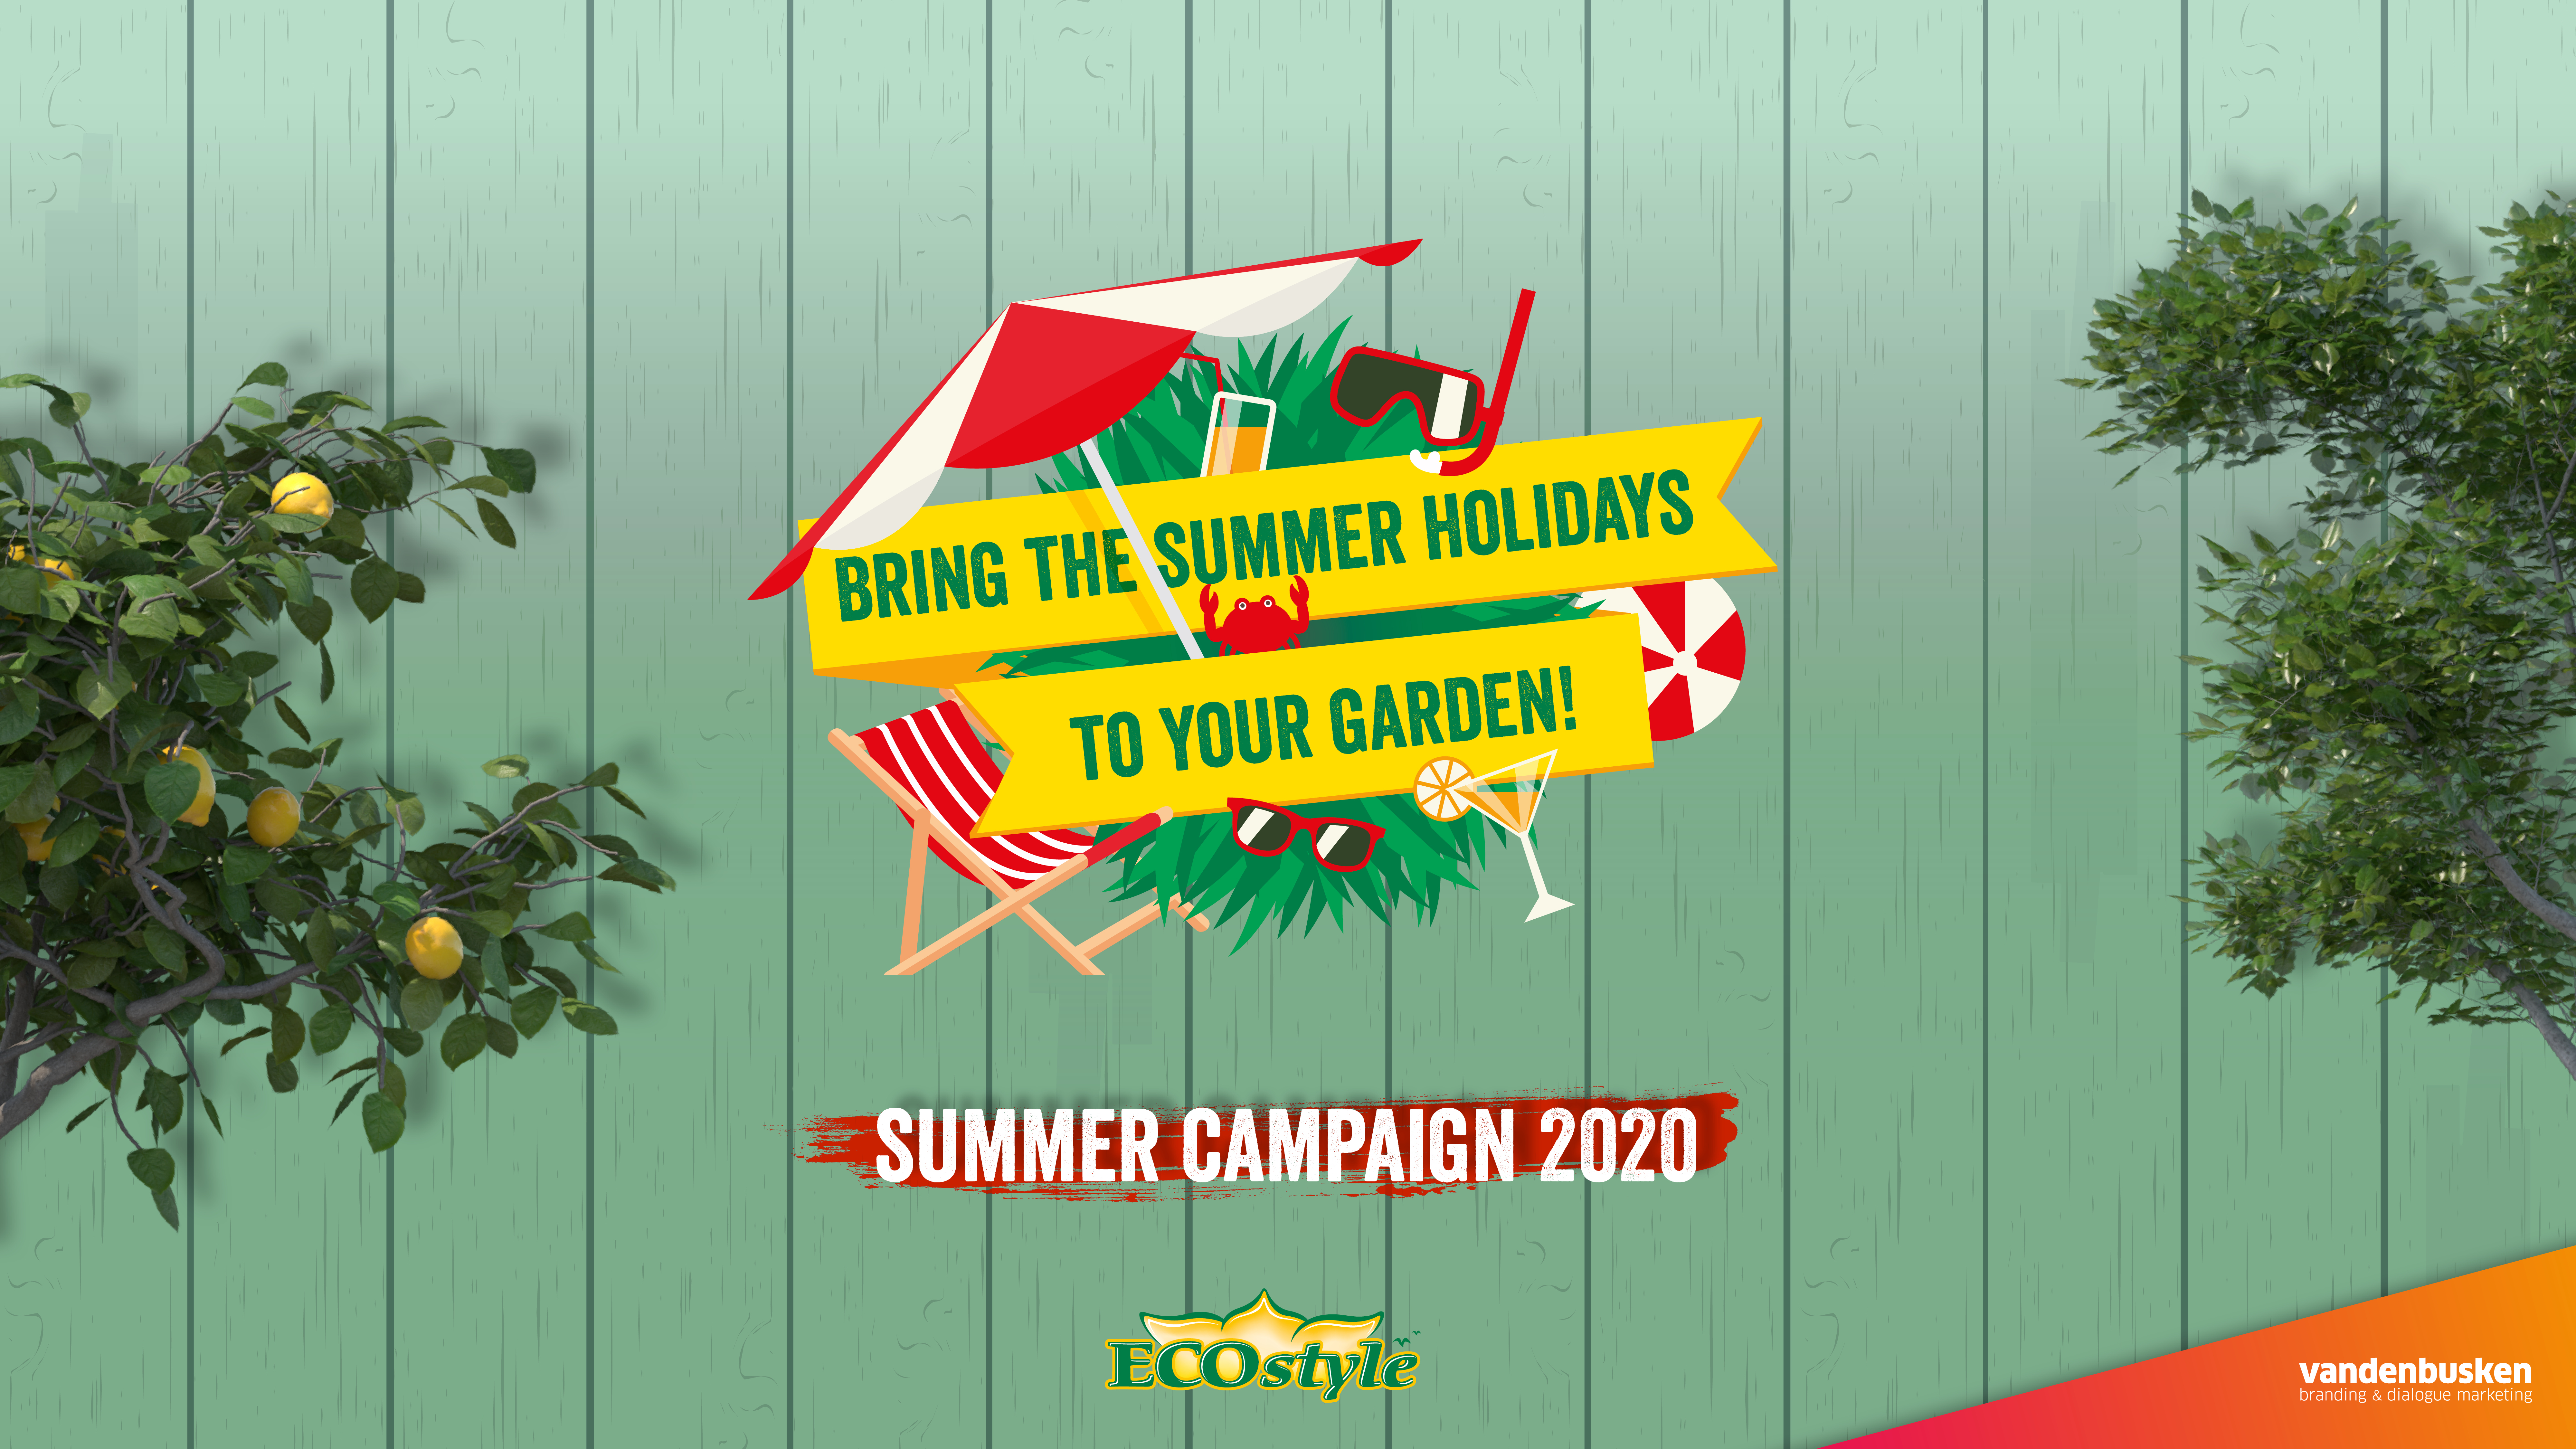 Bring the summer holidays to your garden! Summer campaign 2020